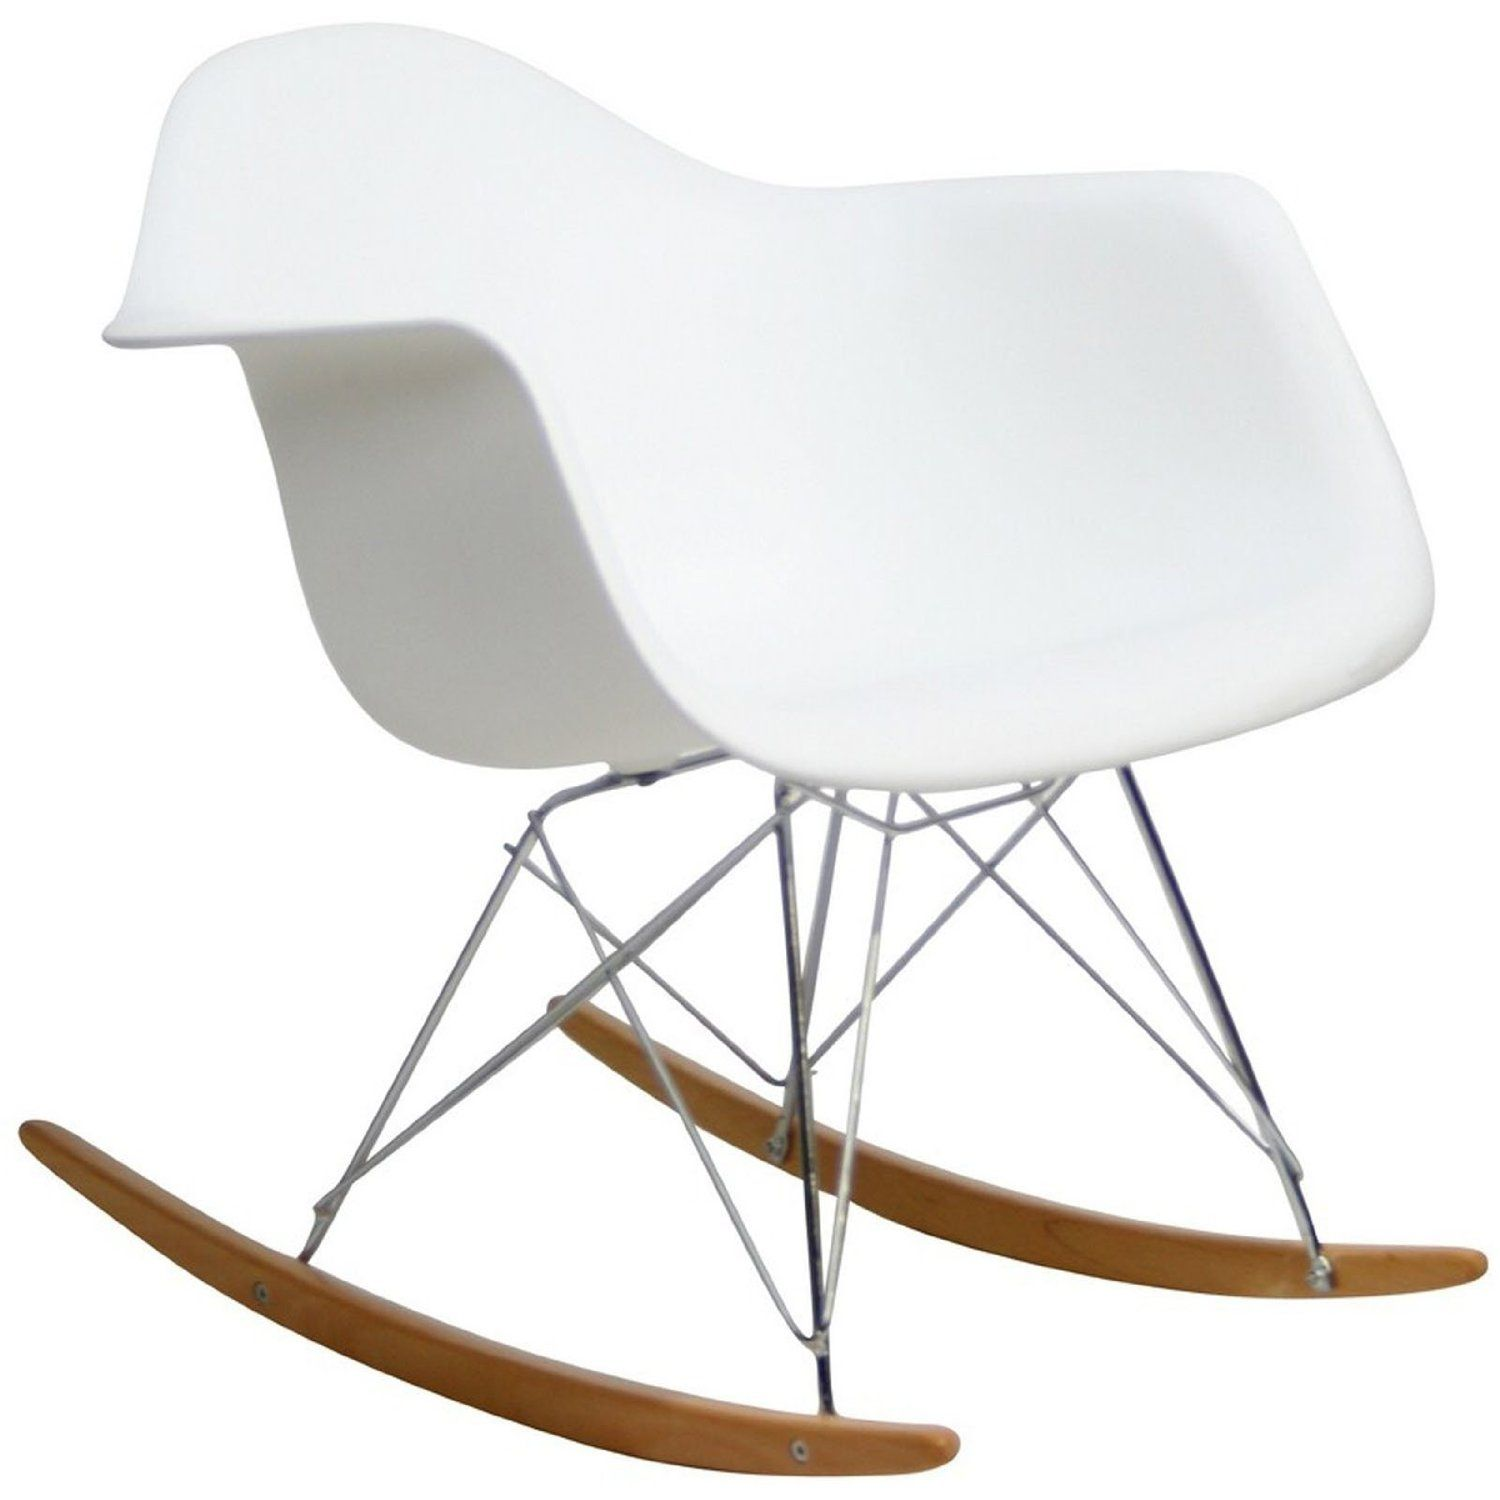 Amazon.com - LexMod Molded Plastic Armchair Rocker in White - Rocking Chairs